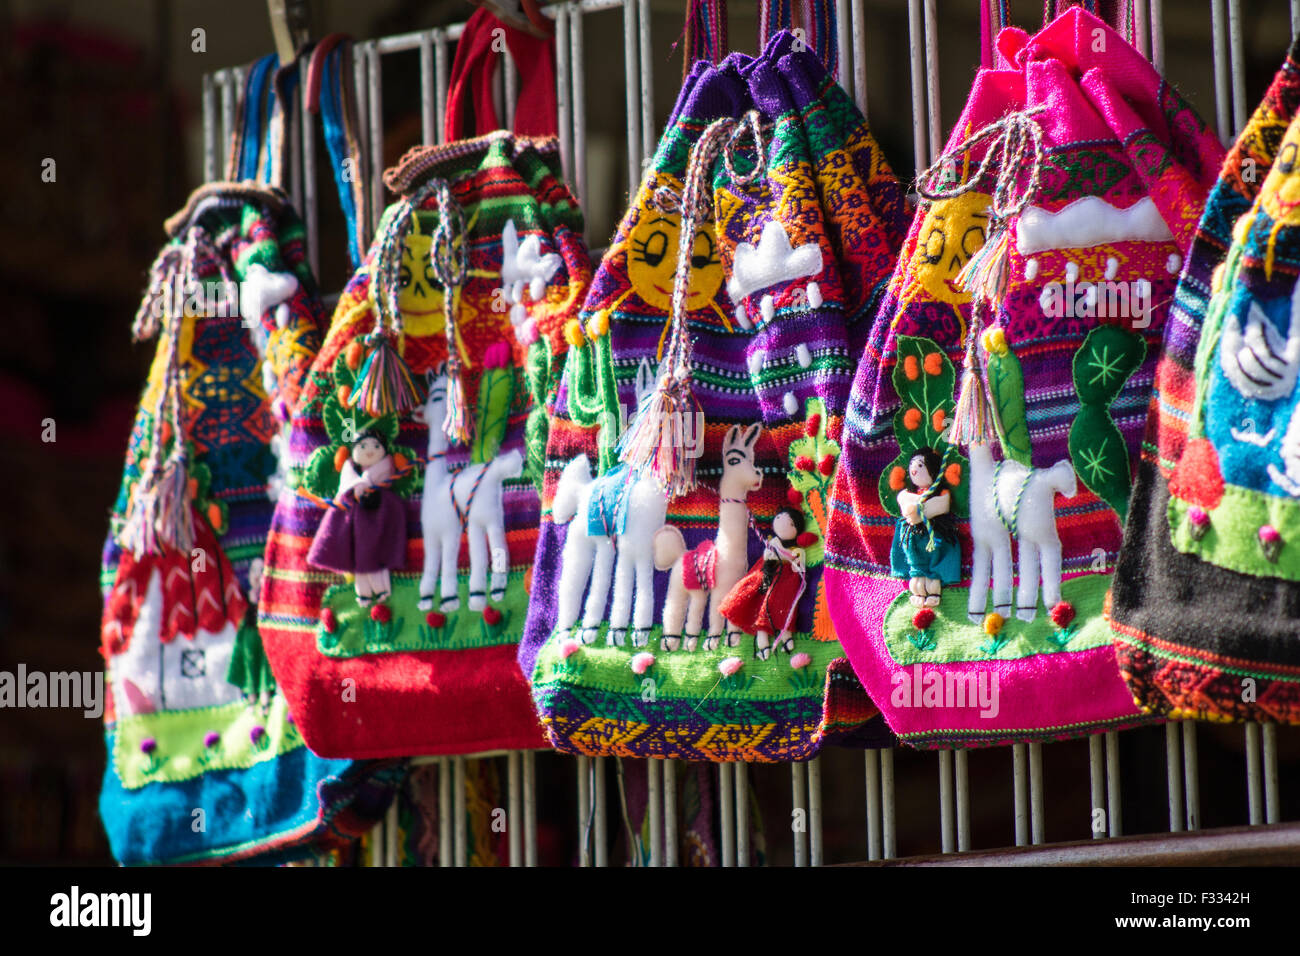 Example of hand bags made by artisans from Peru. - Stock Image